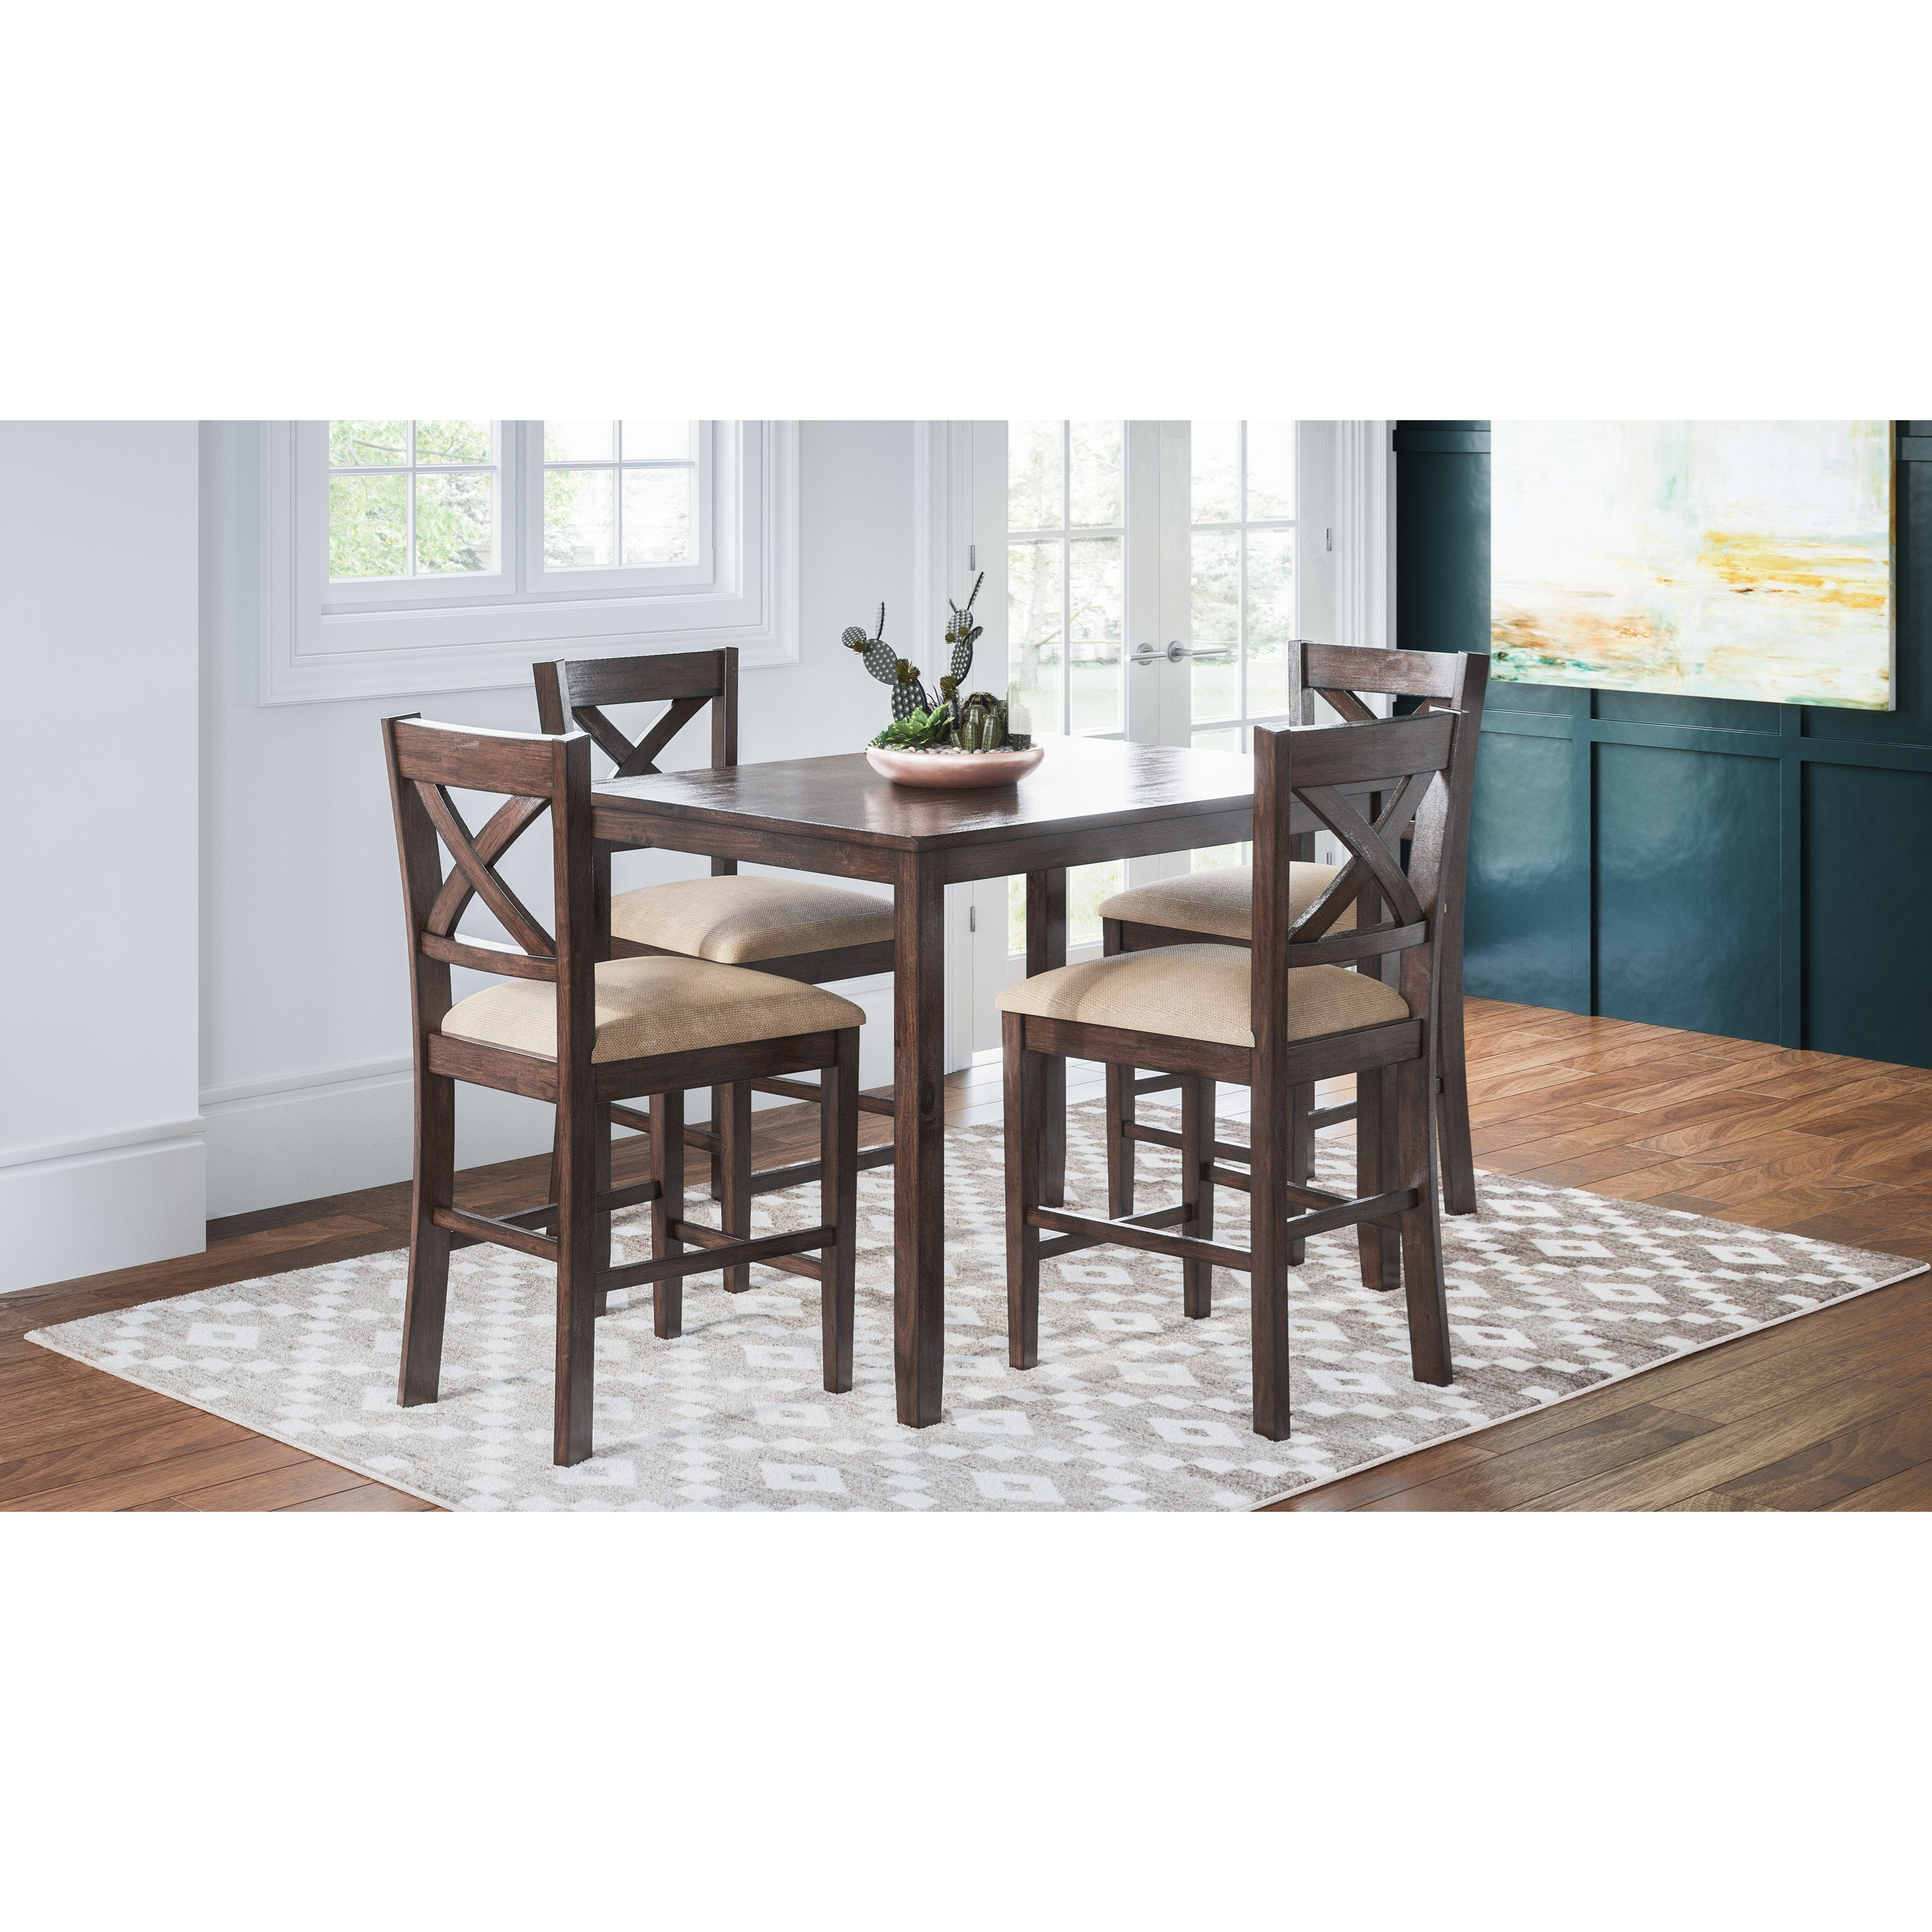 5 Pack Counter Height Dining Set